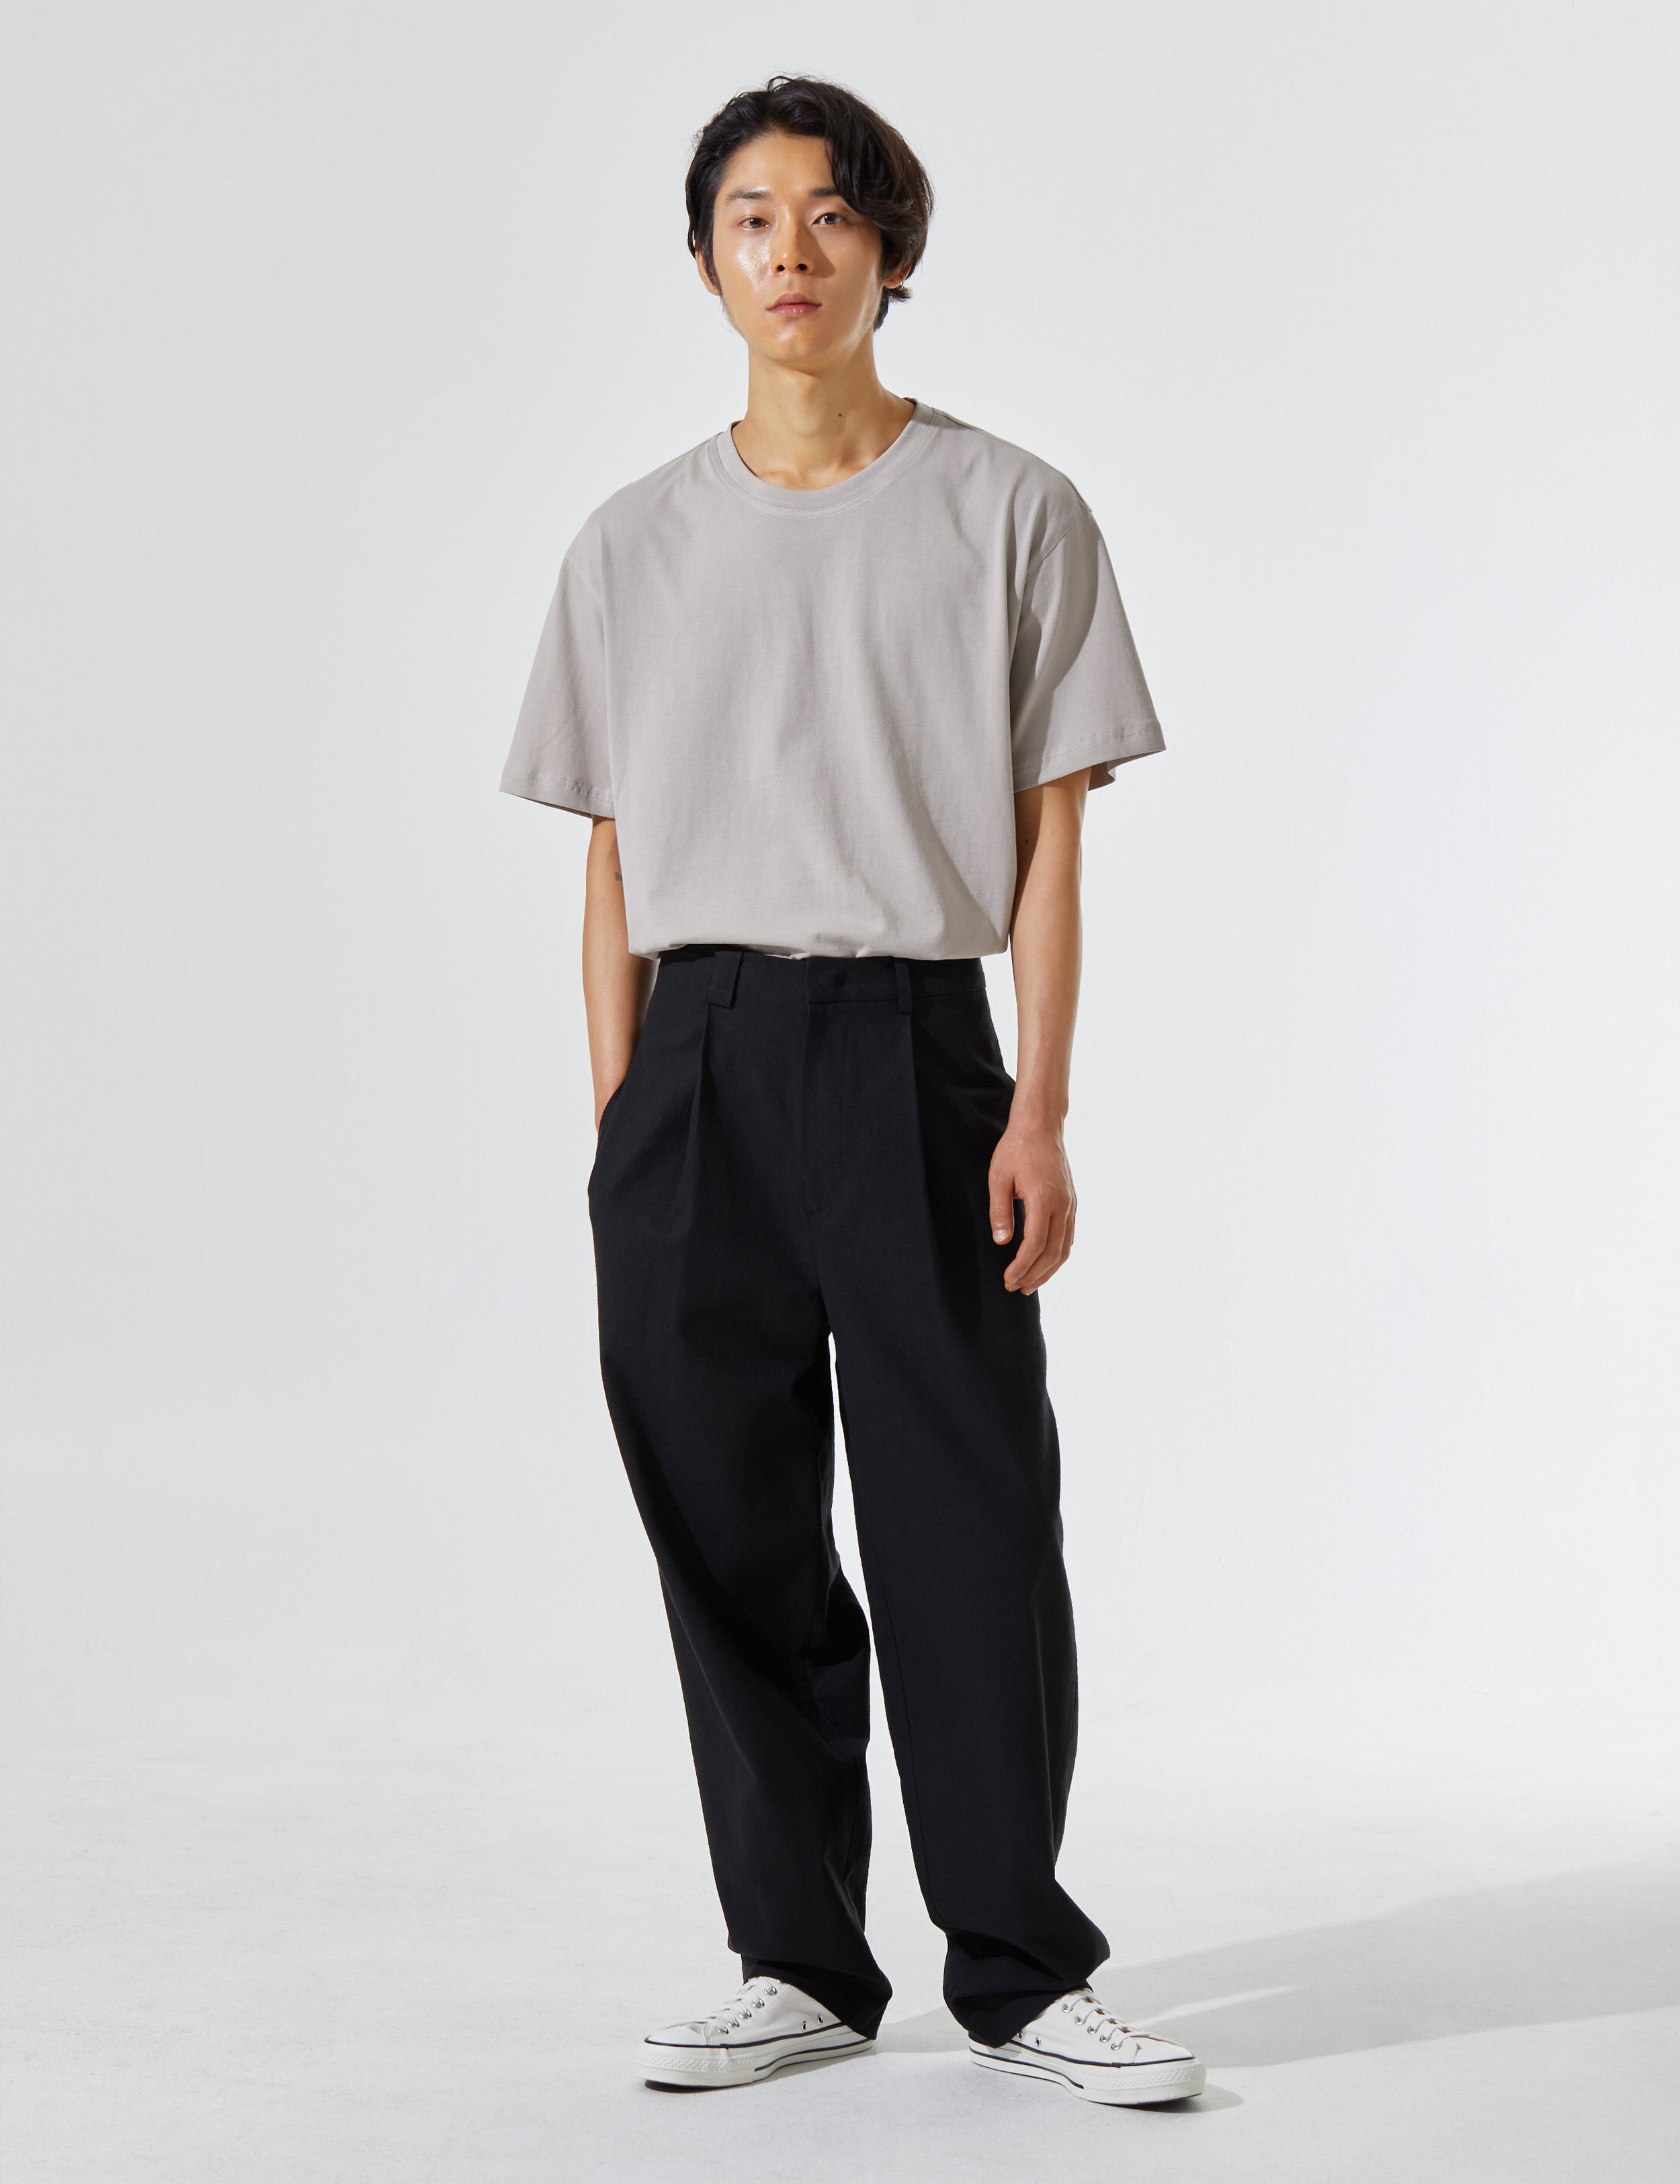 N.7 Undetailed pants Black